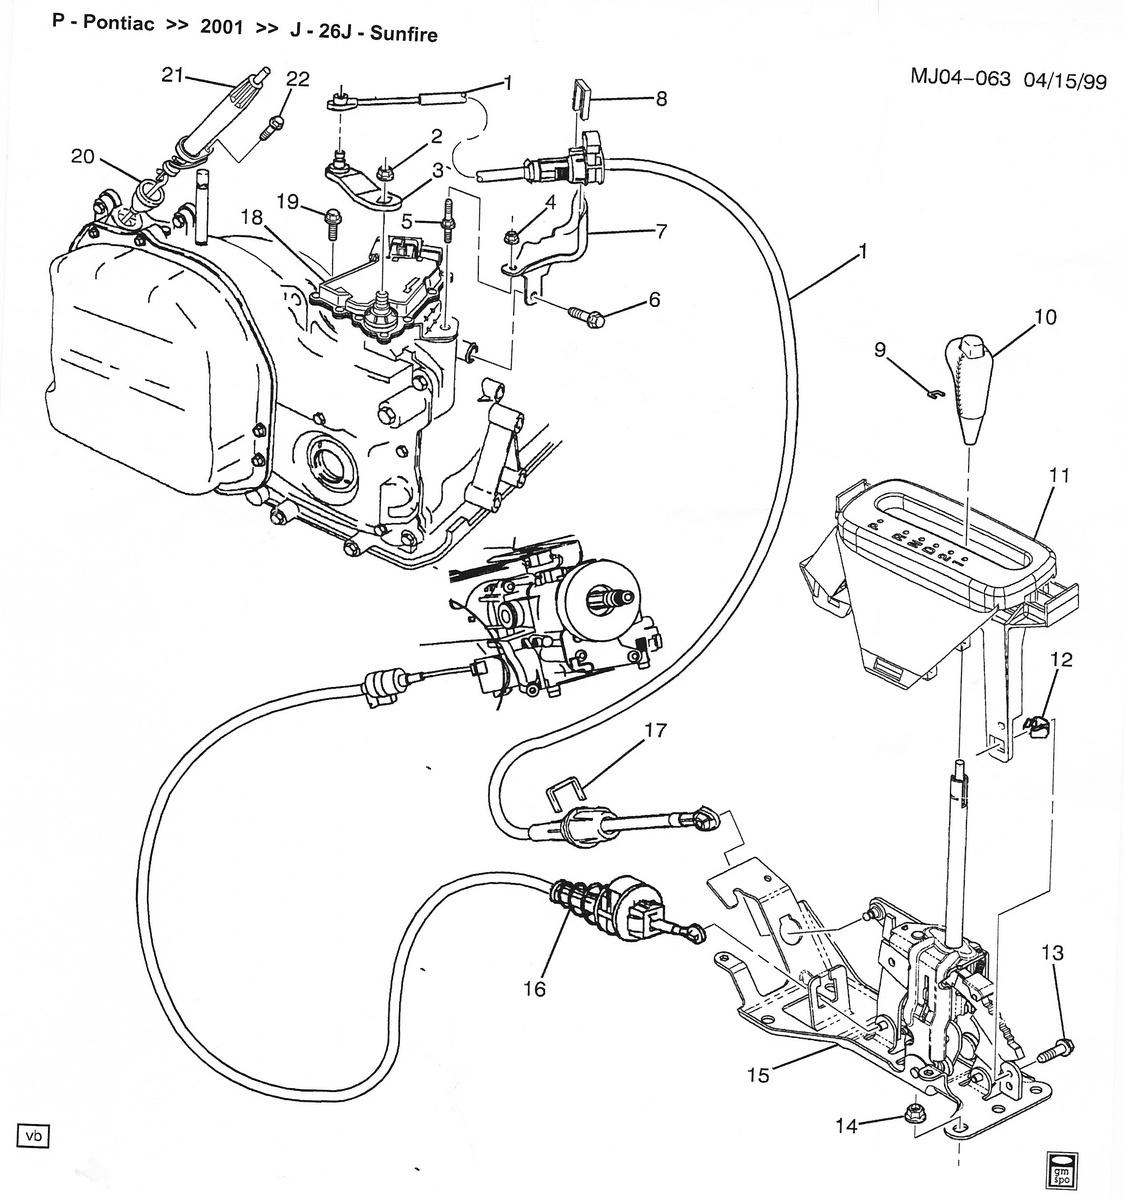 Chevrolet Sonic Repair Manual: Transmission Control Lever Boot Replacement